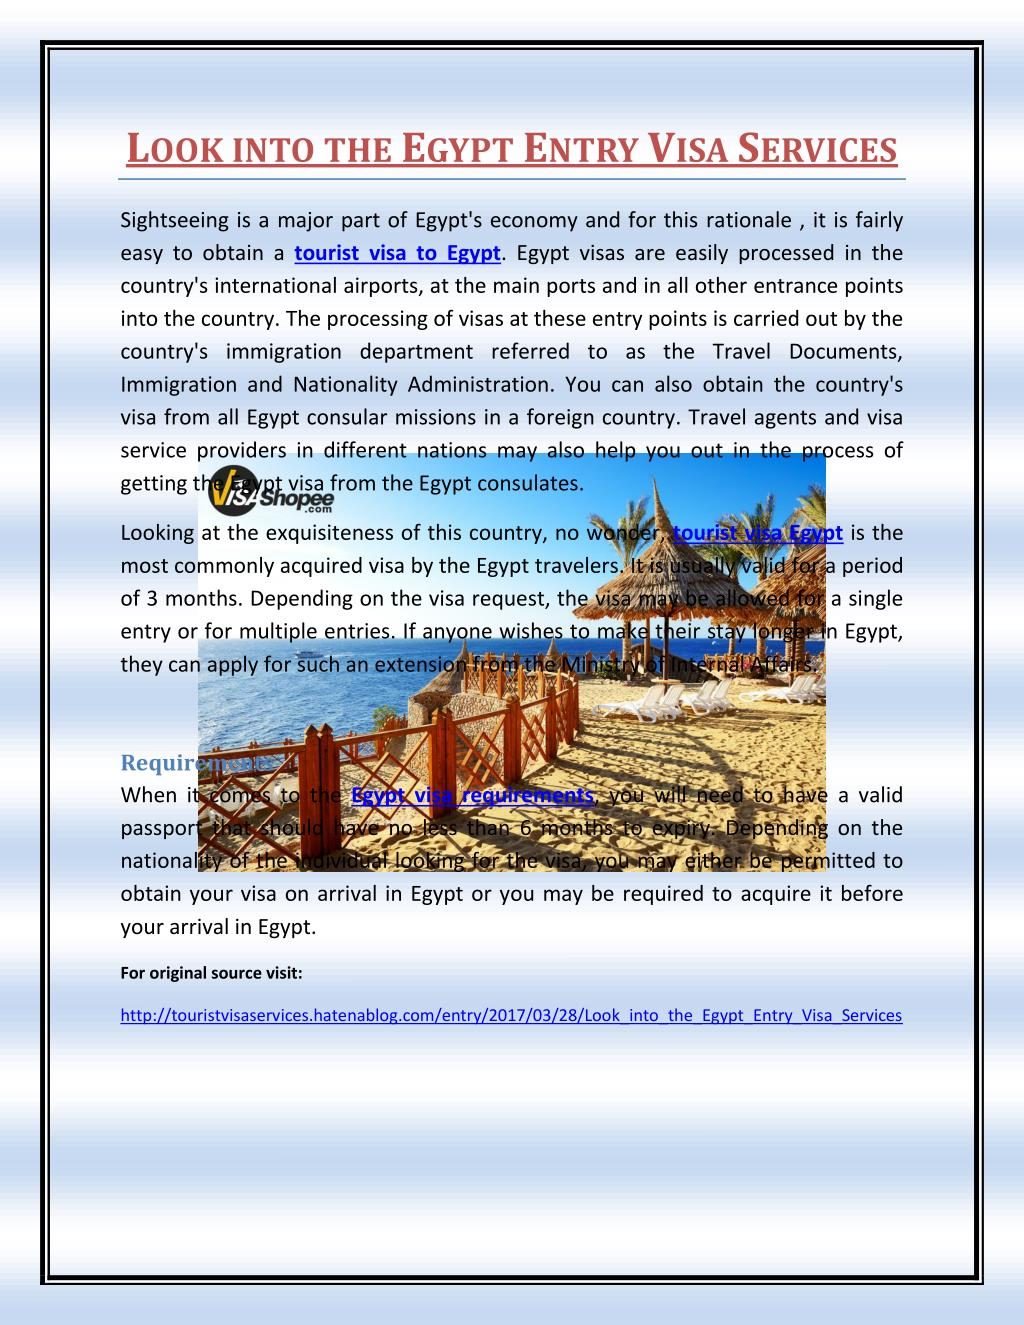 Ppt Look Into The Egypt Entry Visa Services Powerpoint Presentation Free Download Id 7565646